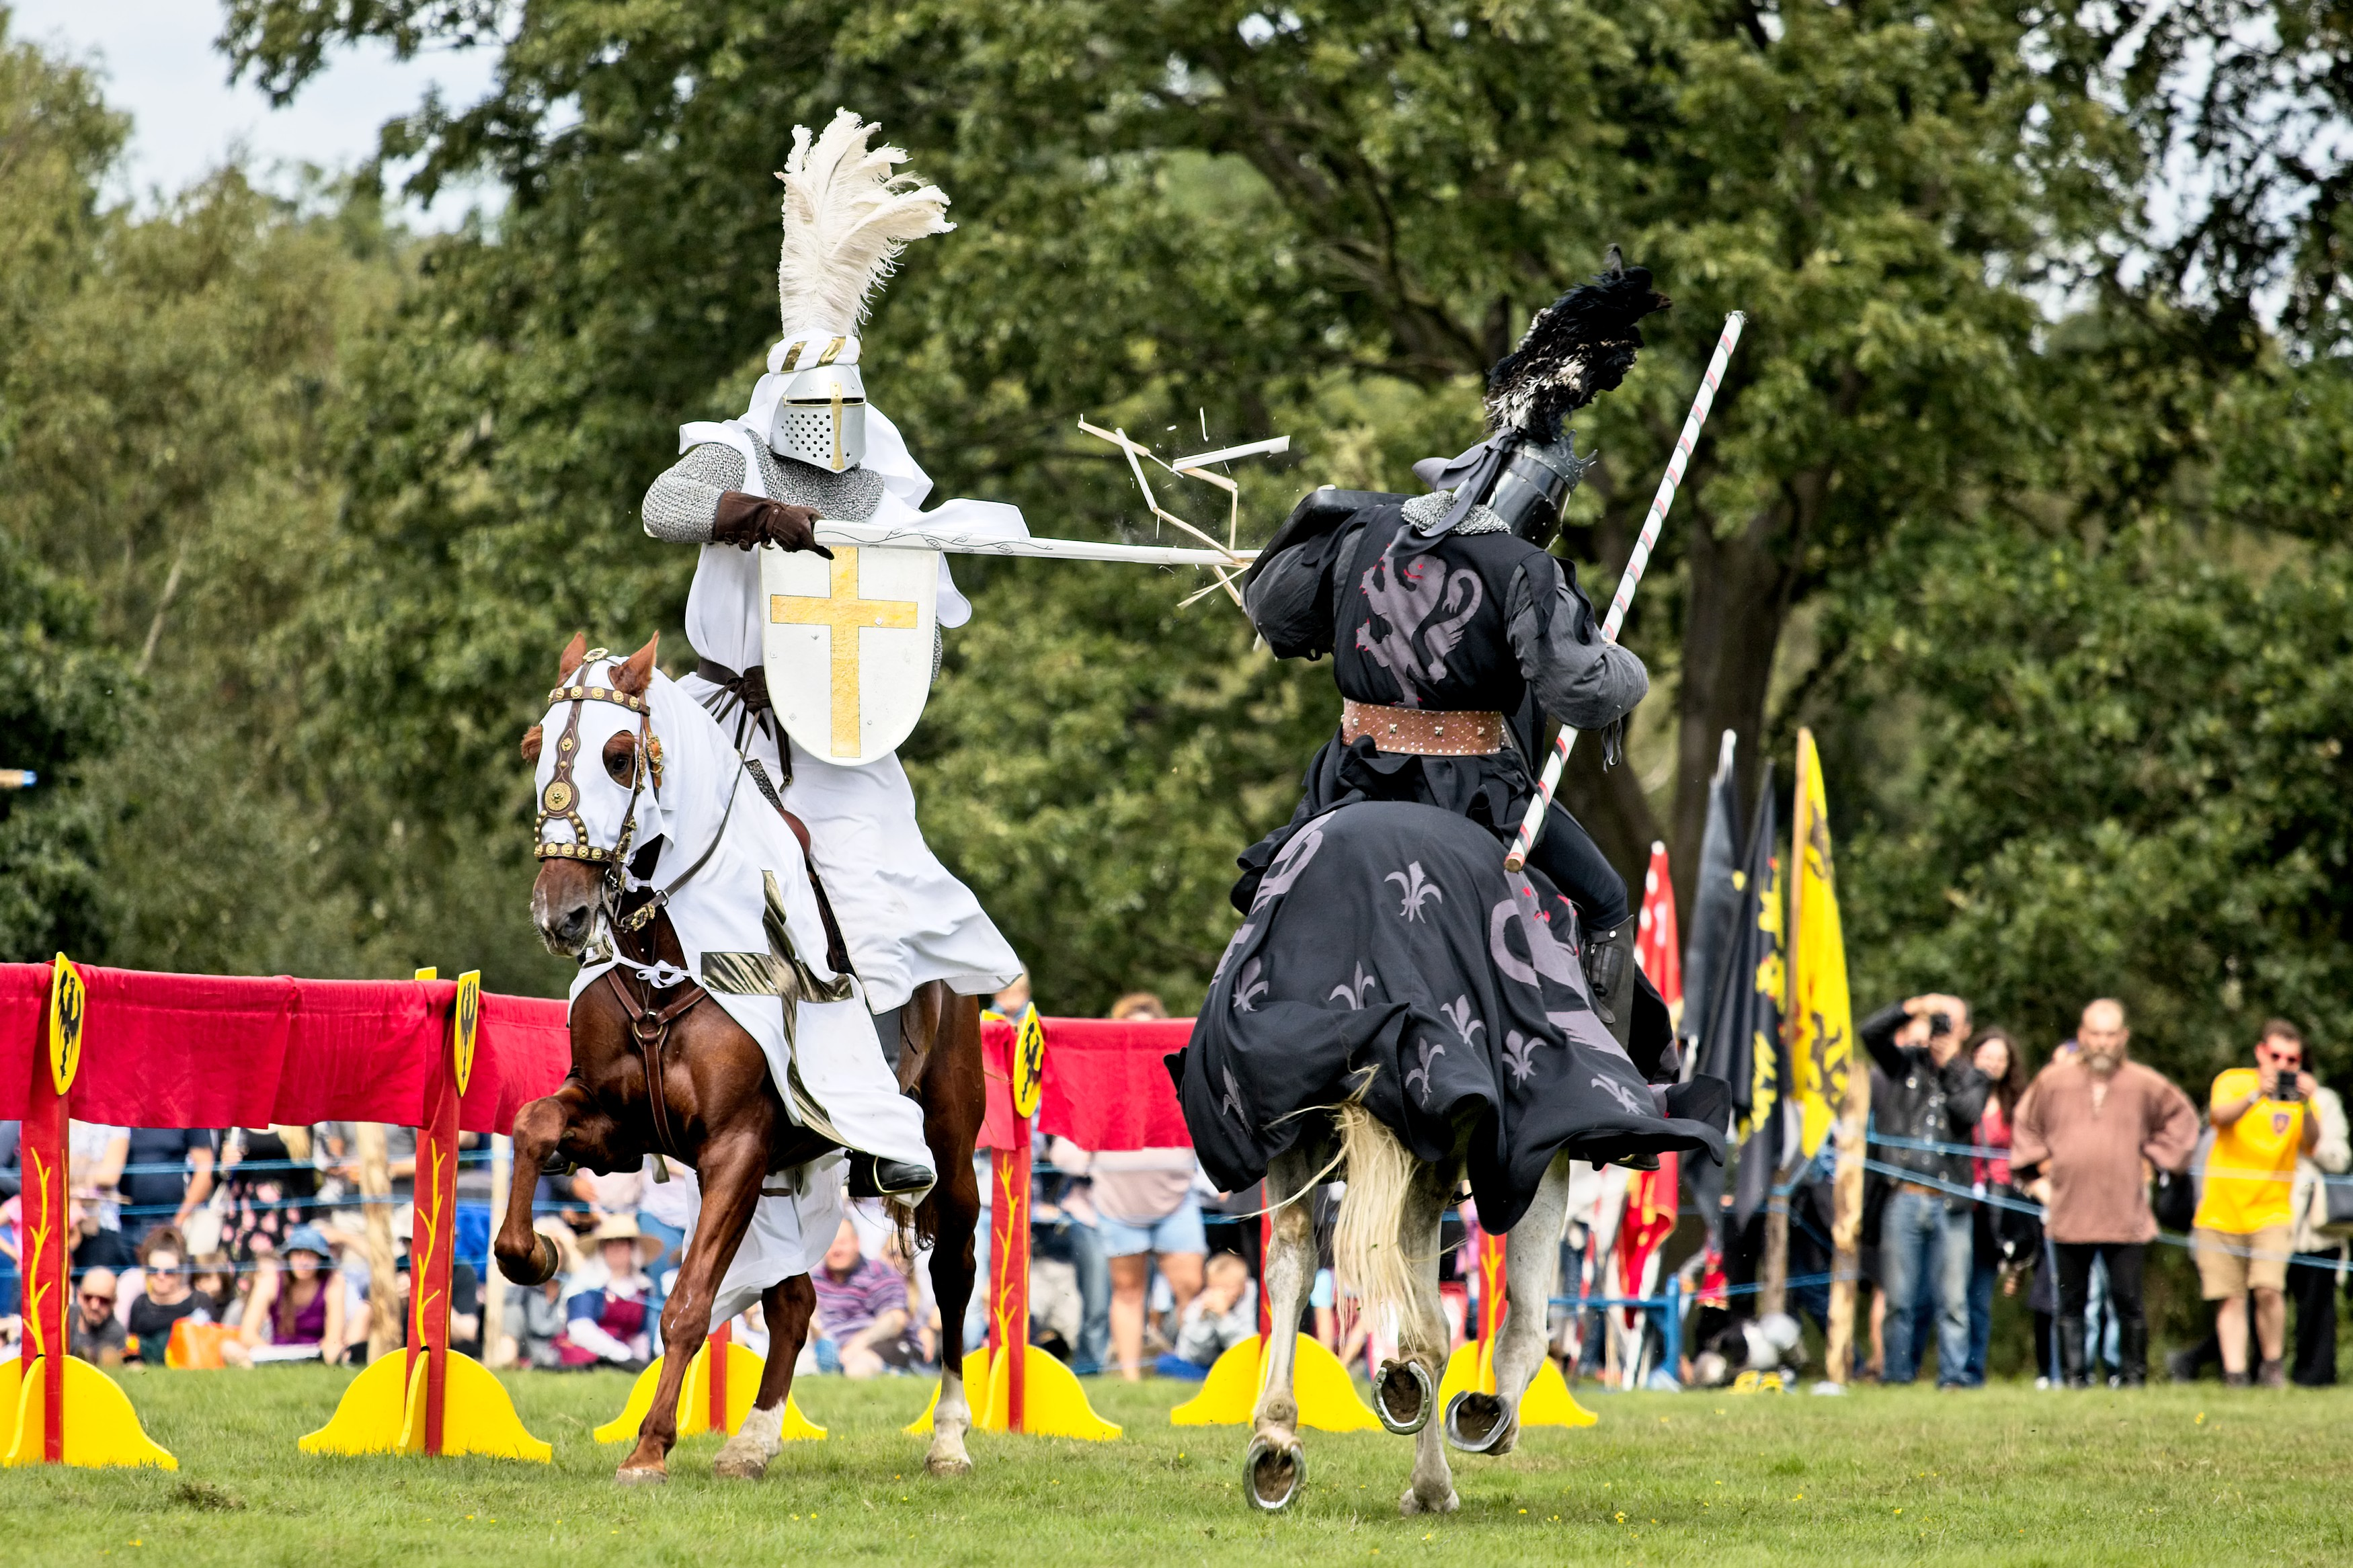 Win tickets to England's Medieval Festival 2019